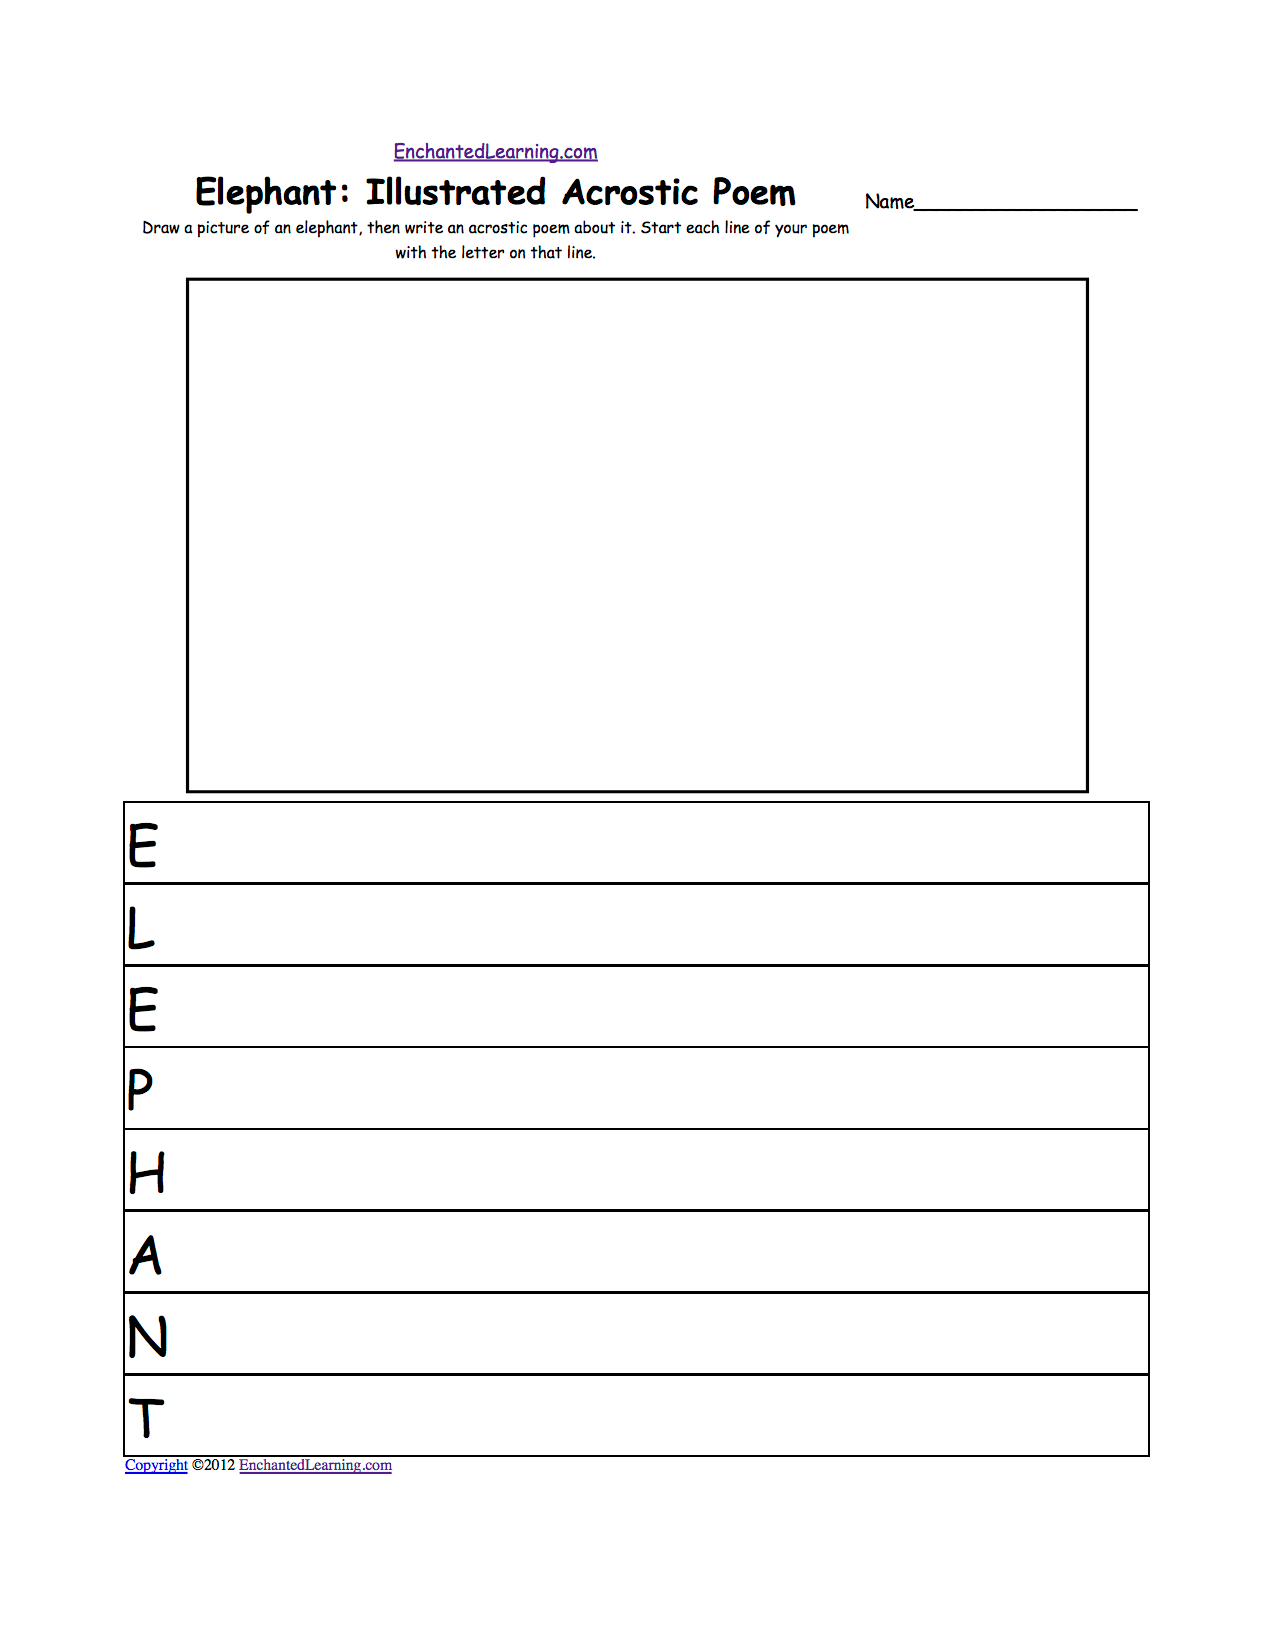 The Elephant Poem Worksheet Answers